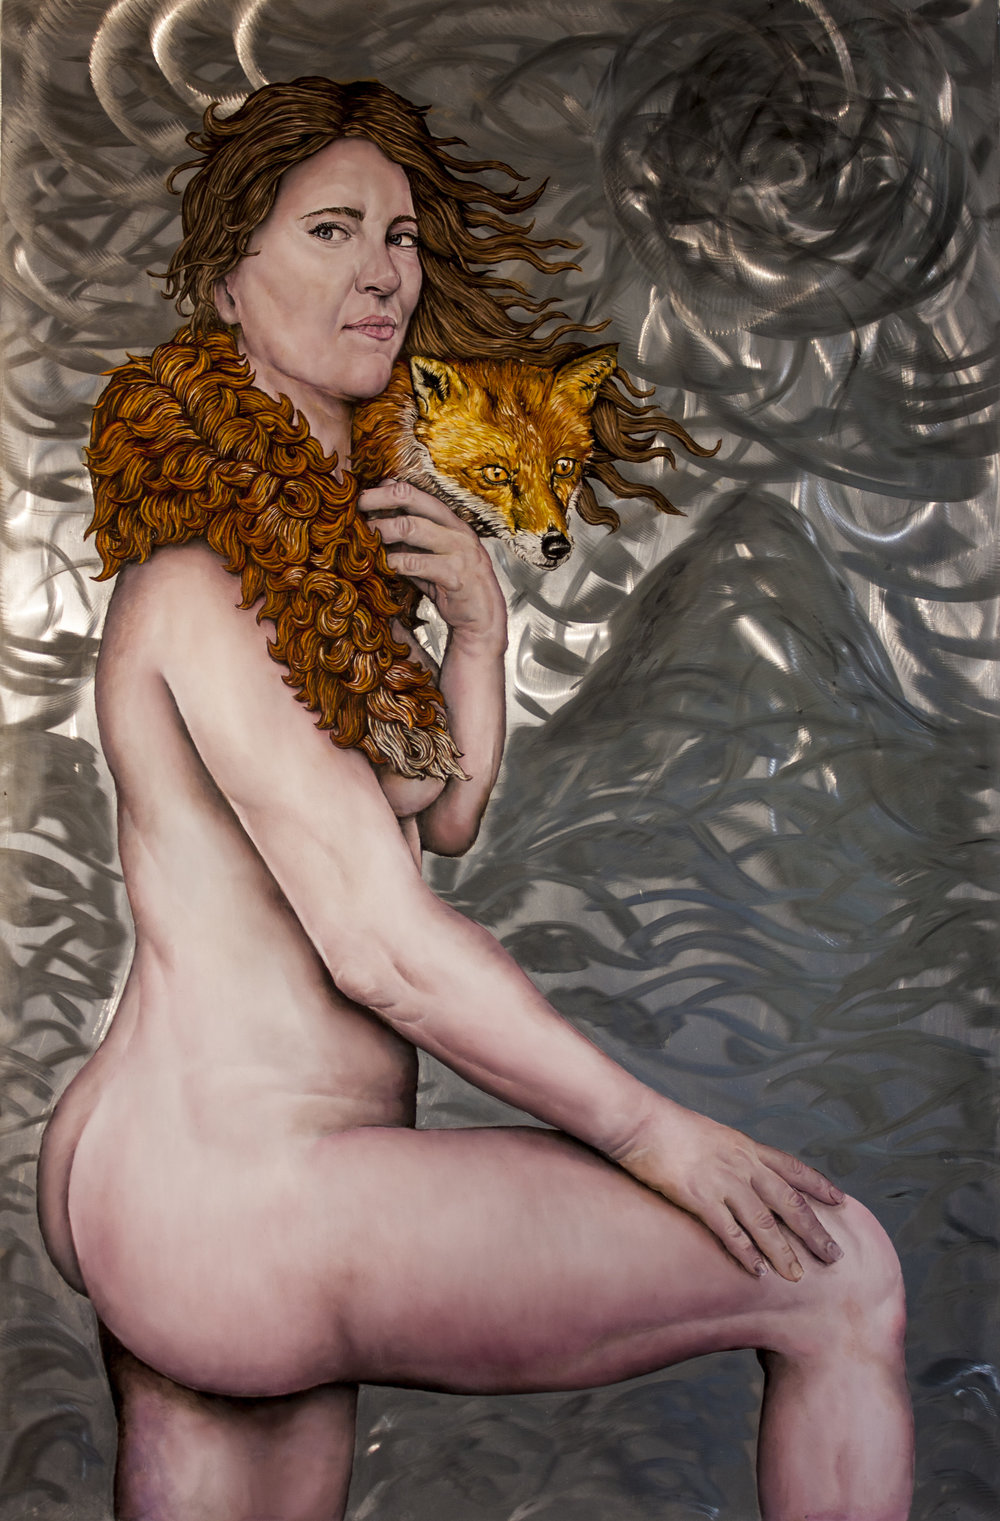 """Woman with Fox"" by James Russell May, Oil on aluminum, 36x24in,2018, $4500."